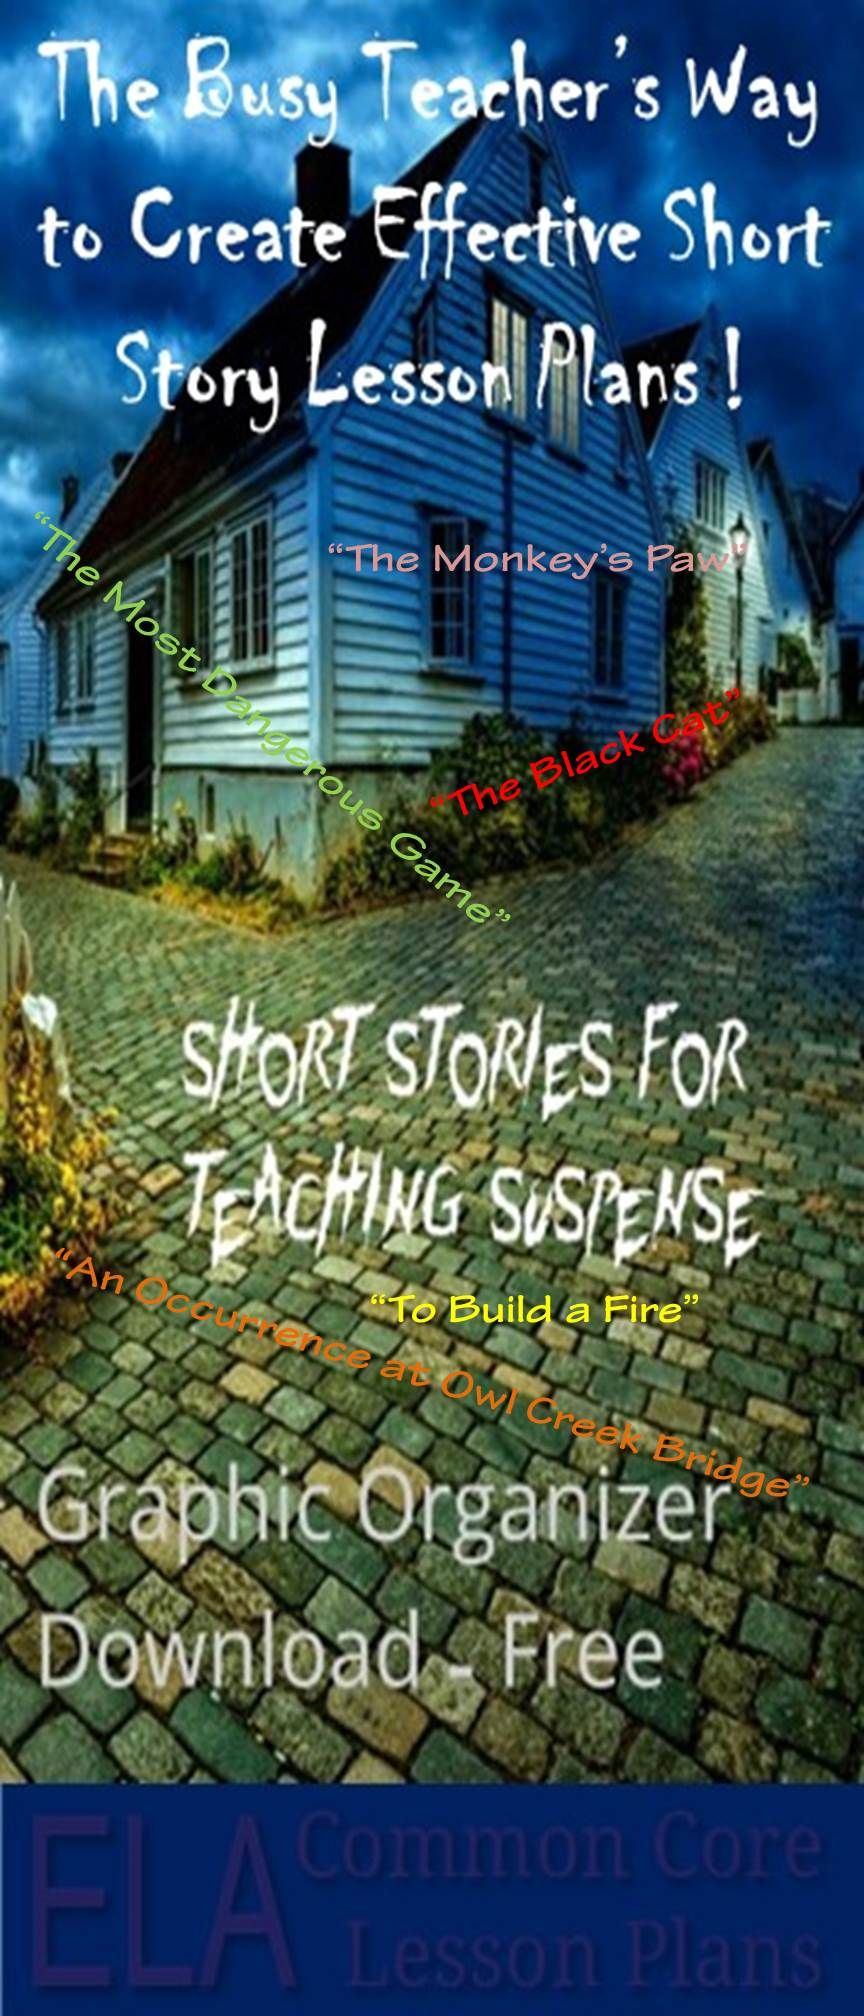 Check Out This List Of Short Stories For Teaching Suspense With Lesson Plans Selections Include The Monkeys Paw Most Dangerous Game Anything